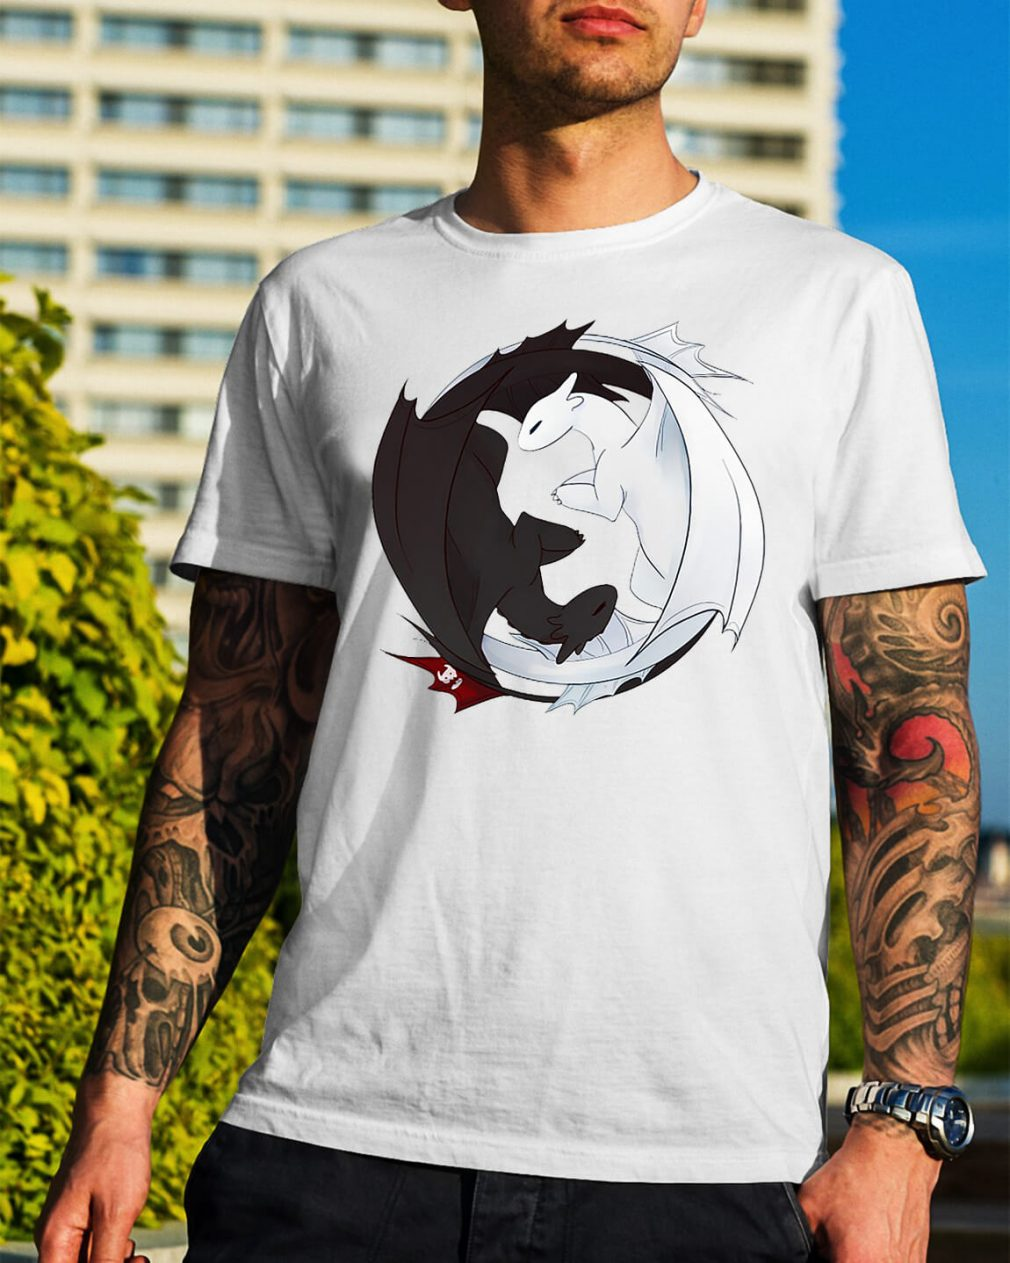 Night Fury and Light Fury dragon shirt